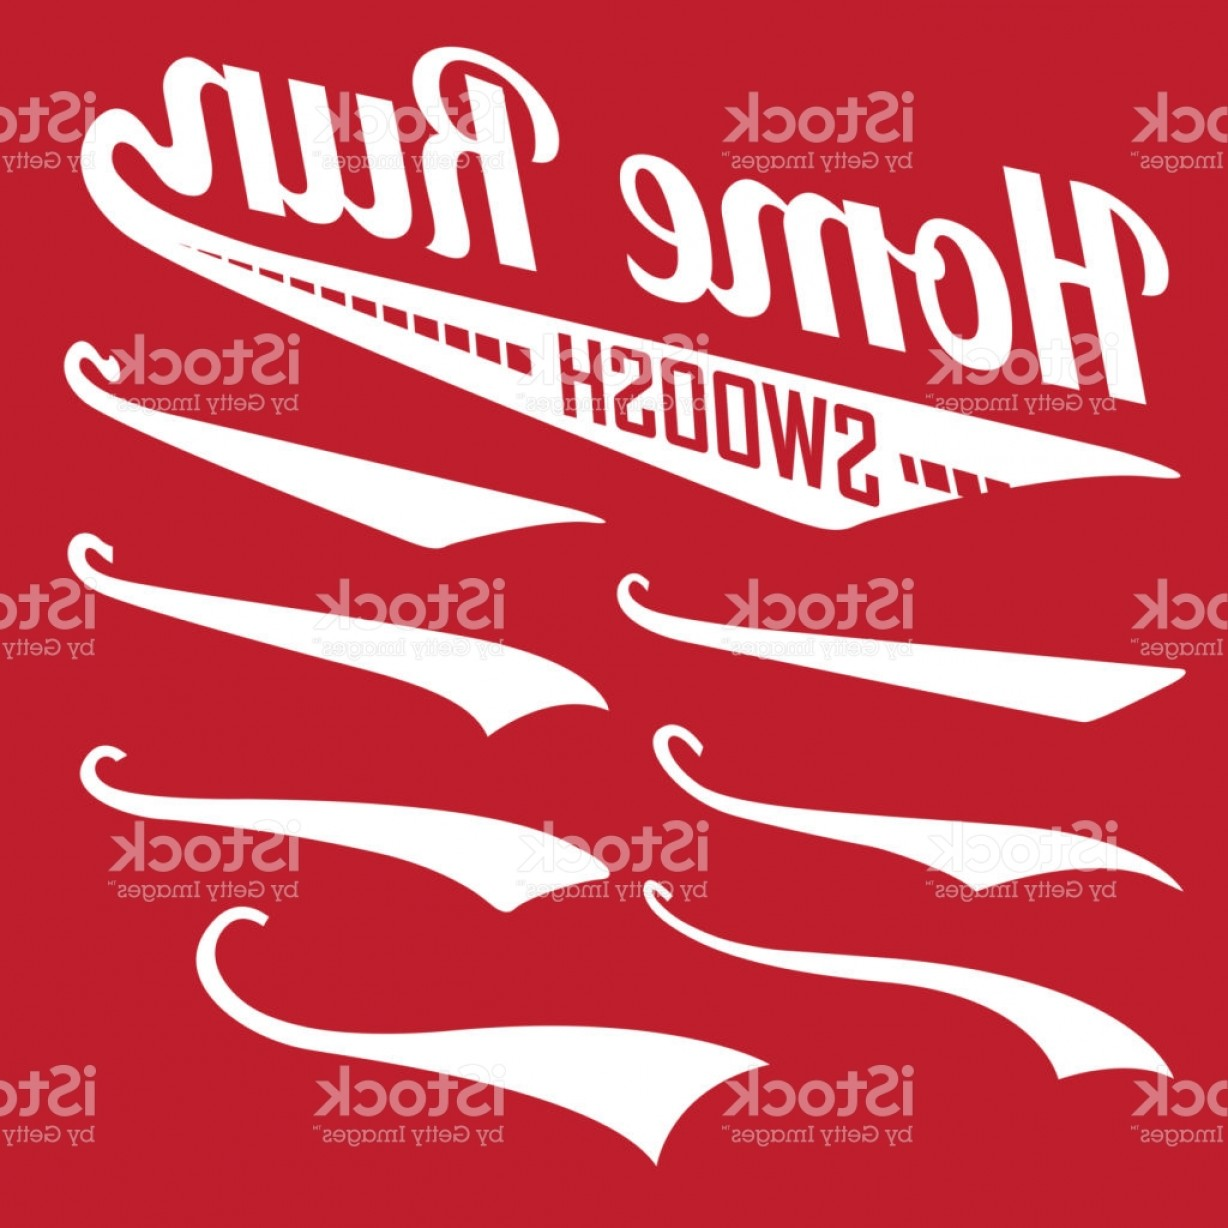 Baseball Tails Vector Clip Arts: Vector Swooshes Swishes Whooshes And Swashes For Typography On Retro Or Vintage Gm